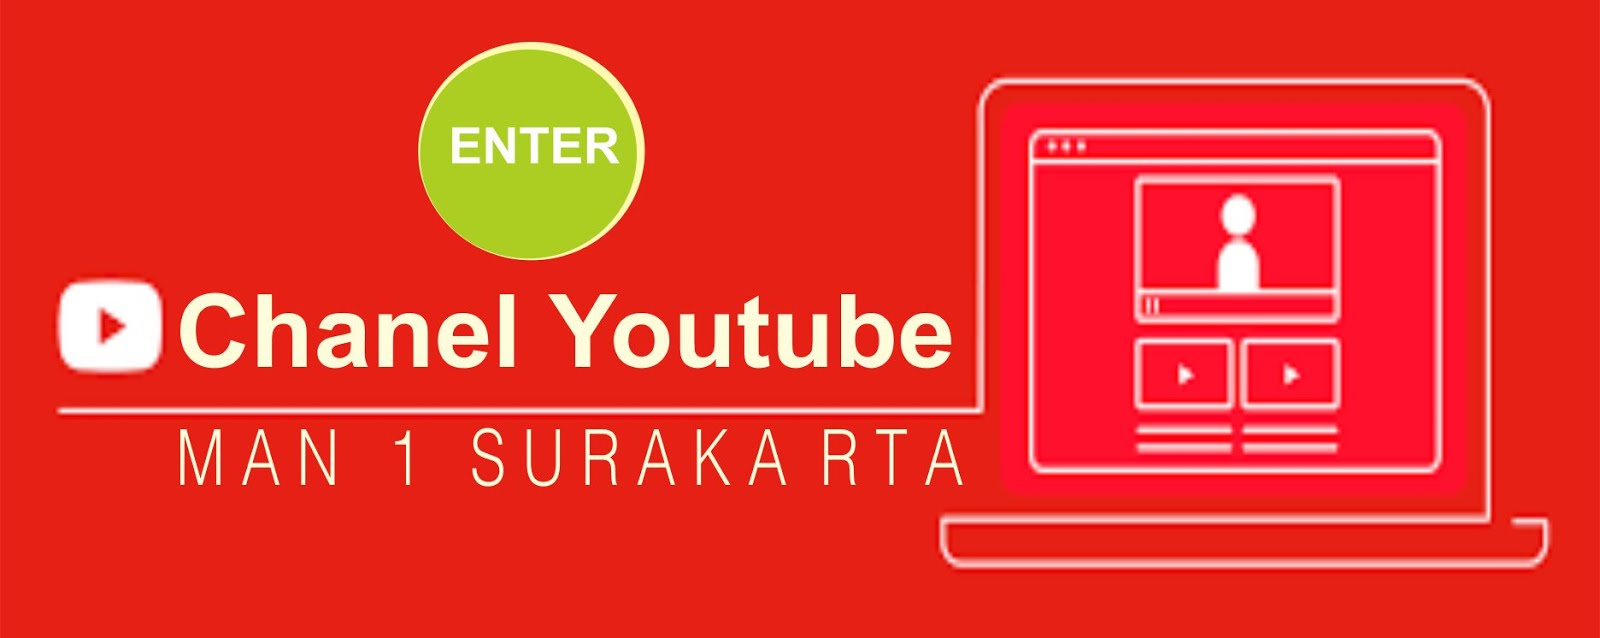 CHANEL YOUTUBE MAN 1 SURAKARTA